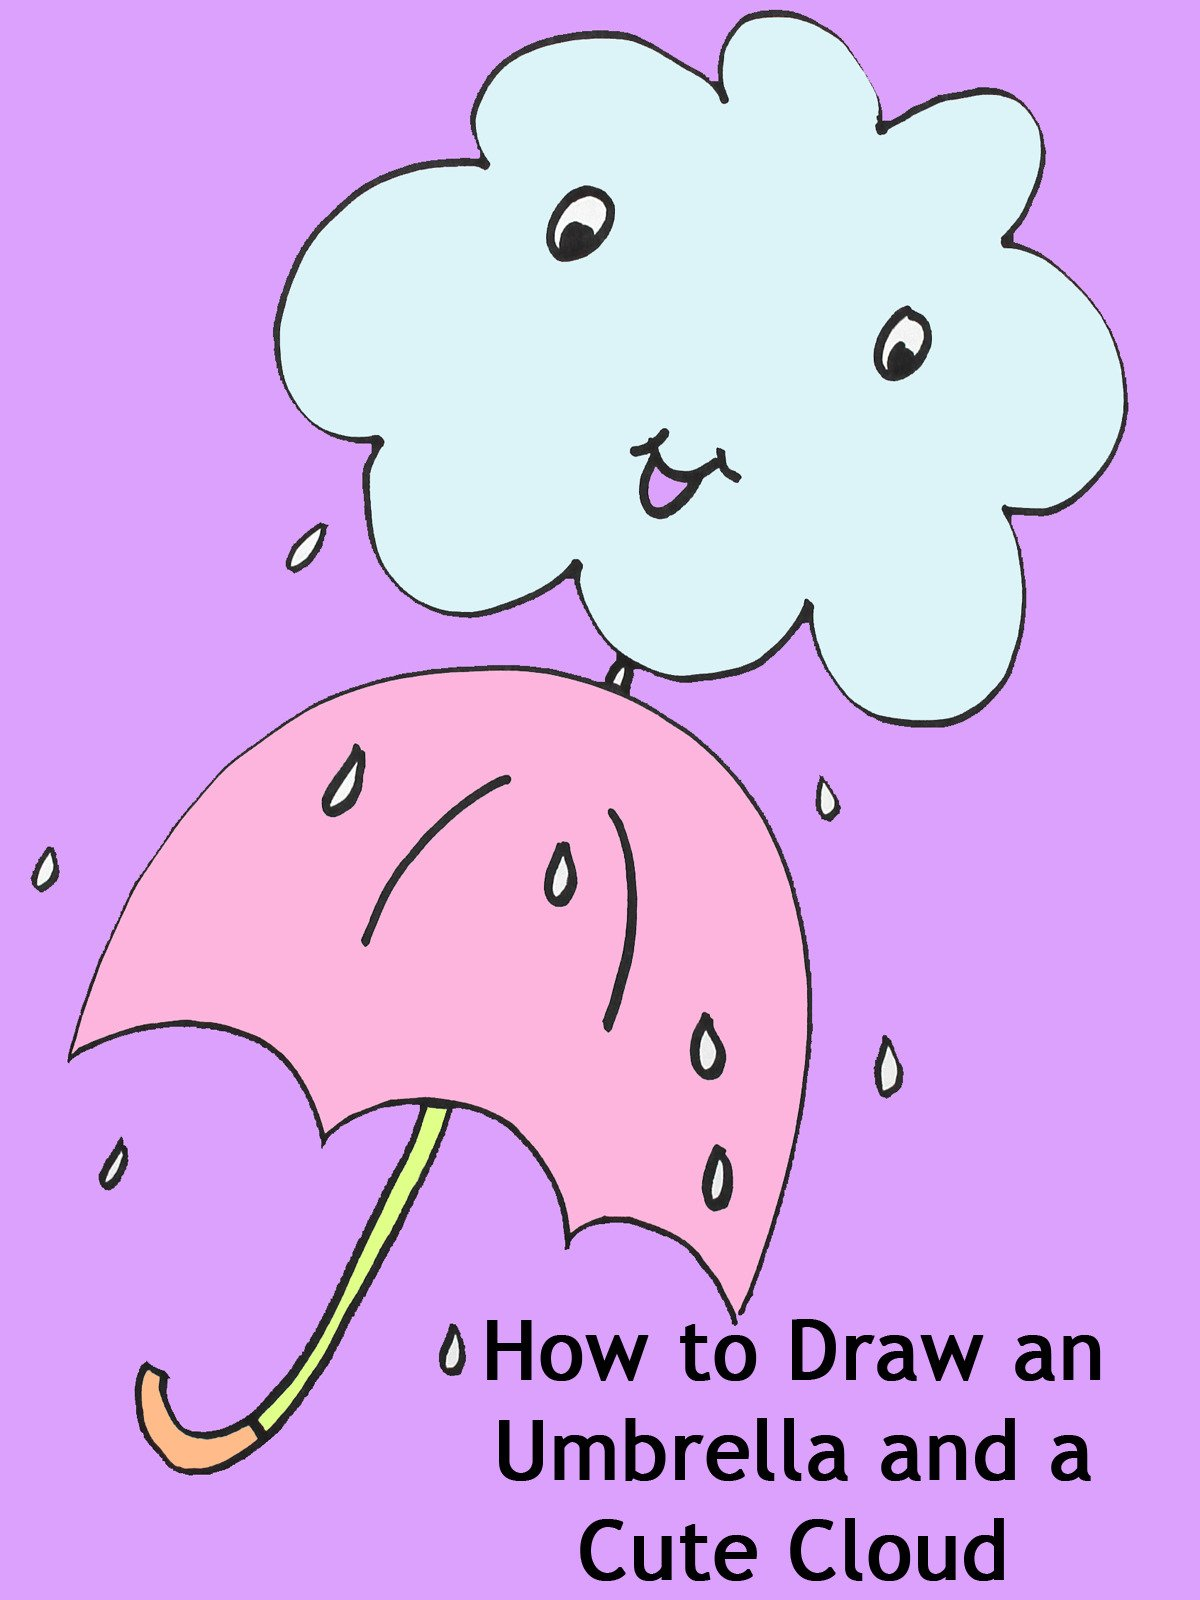 How to Draw an Umbrella and a Cute Cloud